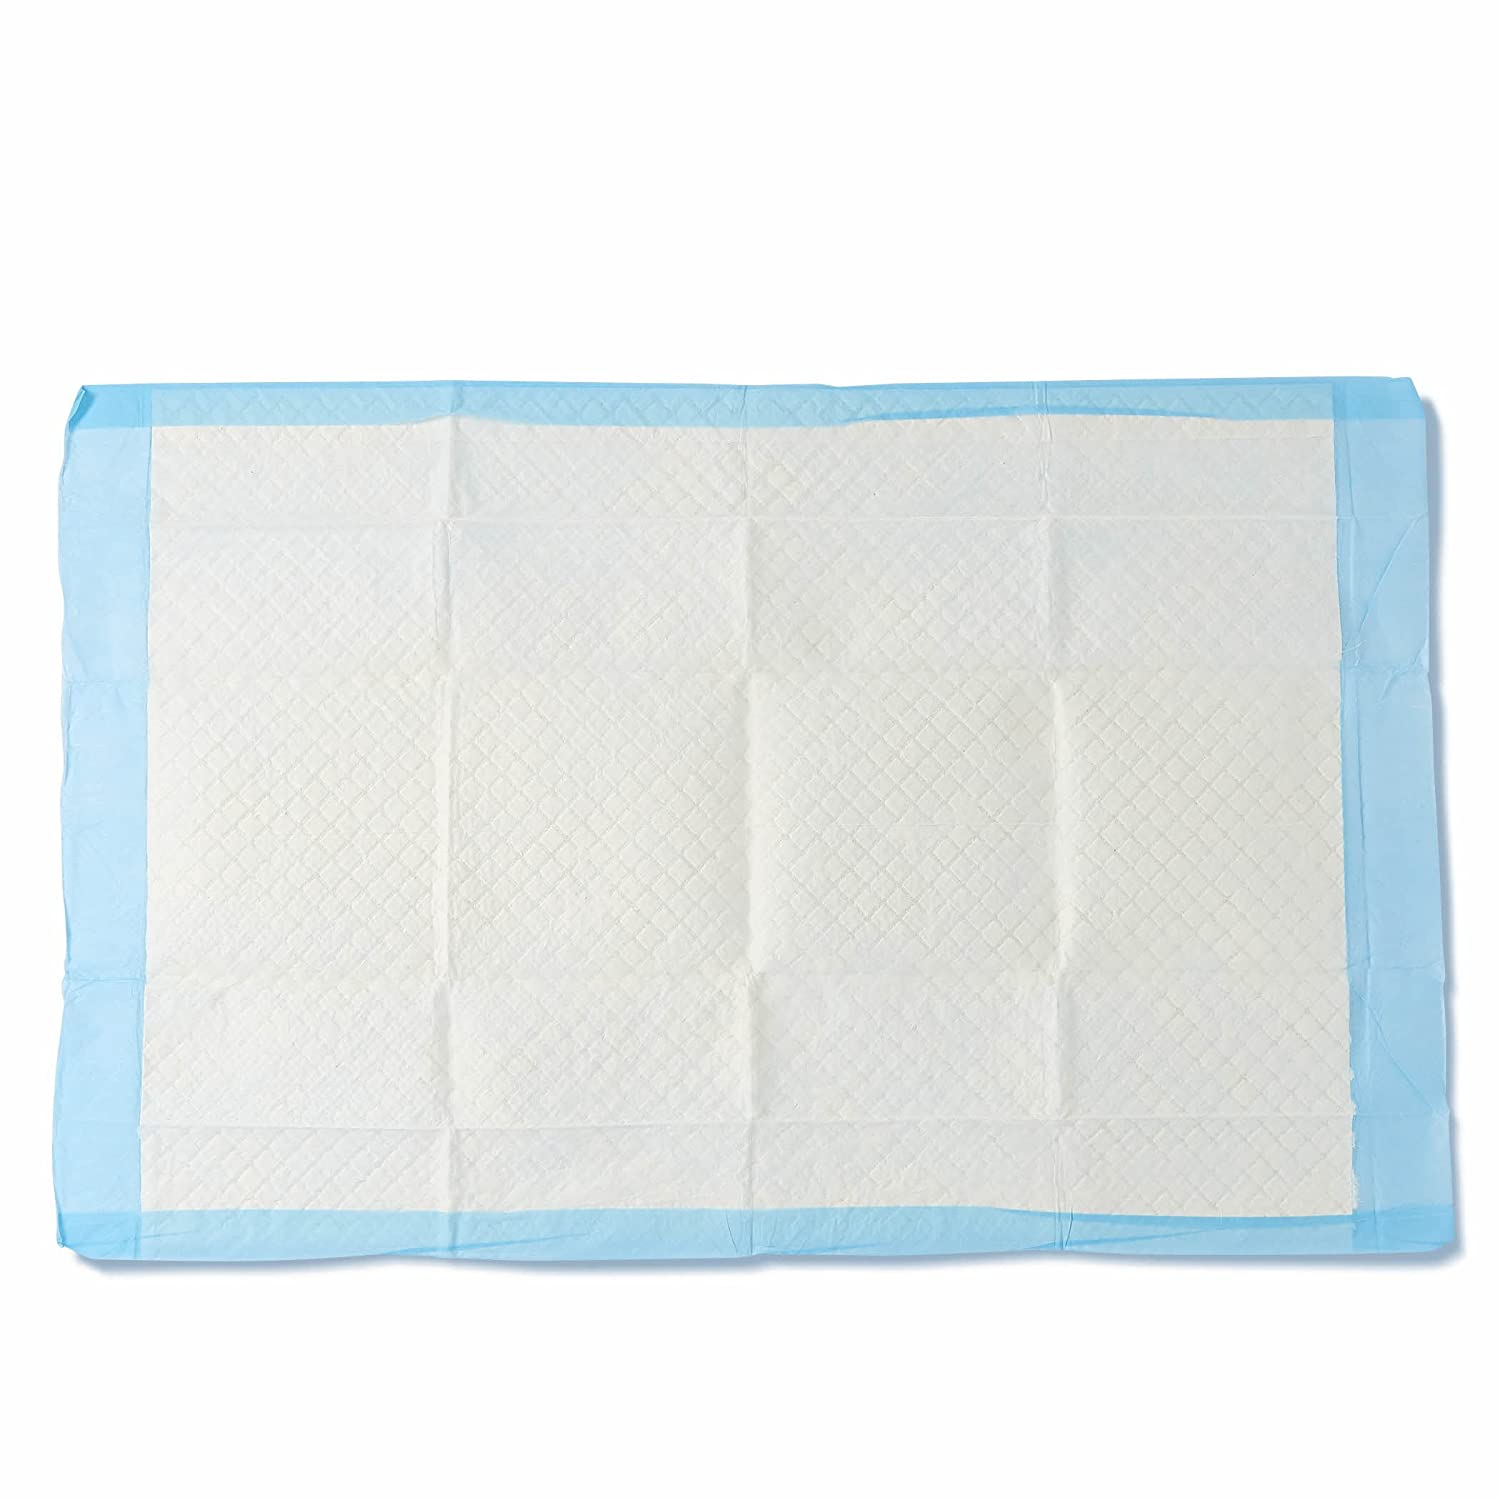 "Medline Moderate Absorbency 23"" x 36"" Quilted Fluff Disposable Underpads, 150 Per Case, 5 Per Bag, Great for Beds, Furniture, Surfaces"